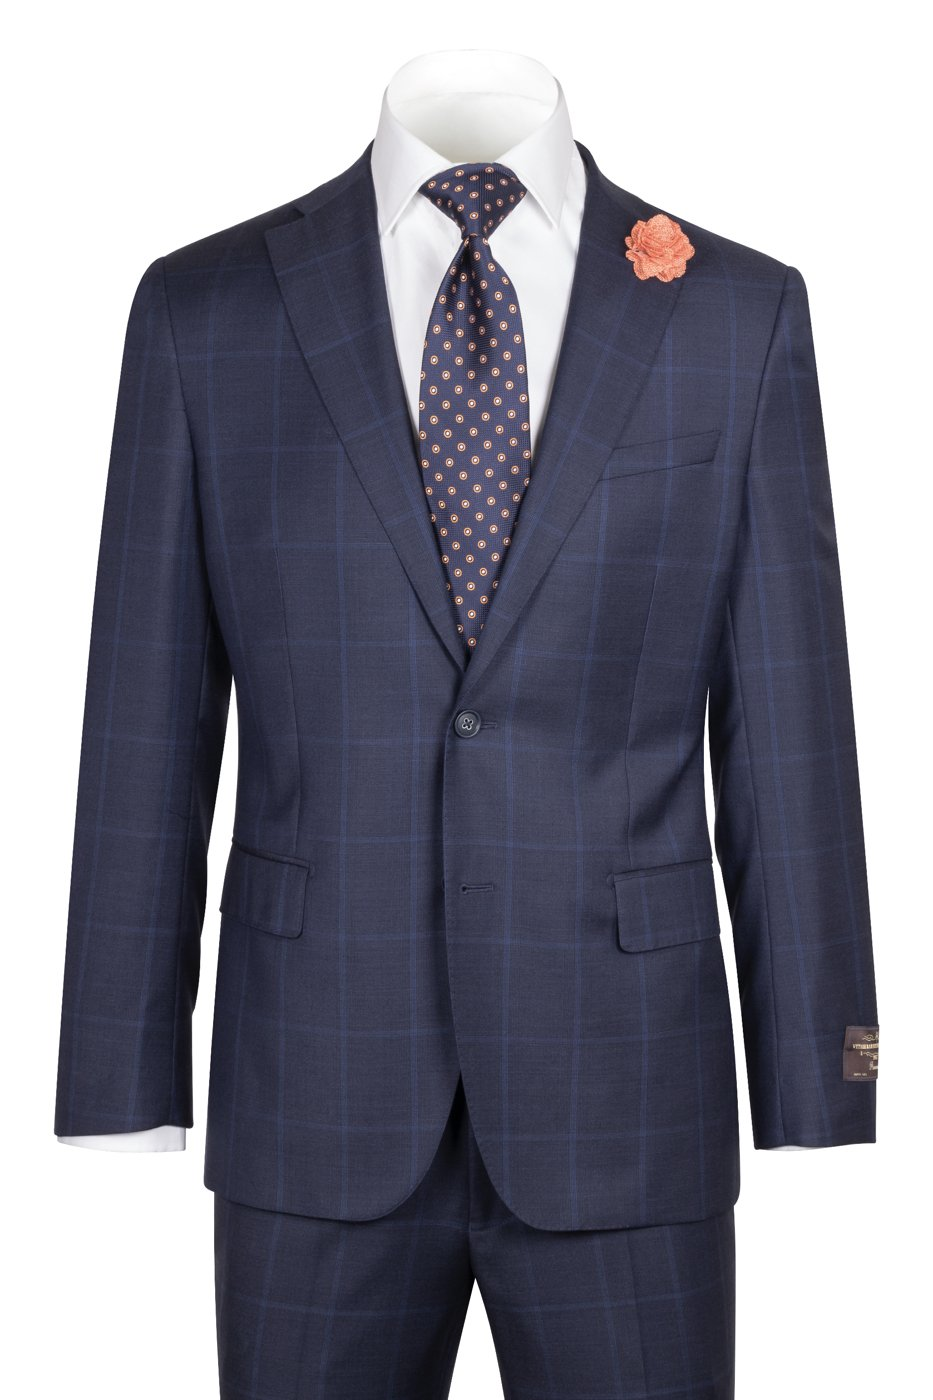 Dolcetto Modern Fit, Navy with Blue windowpane, Pure Wool Suit by VITALE BARBERIS CANONICO Cloth by Canaletto Menswear 86.9089/3